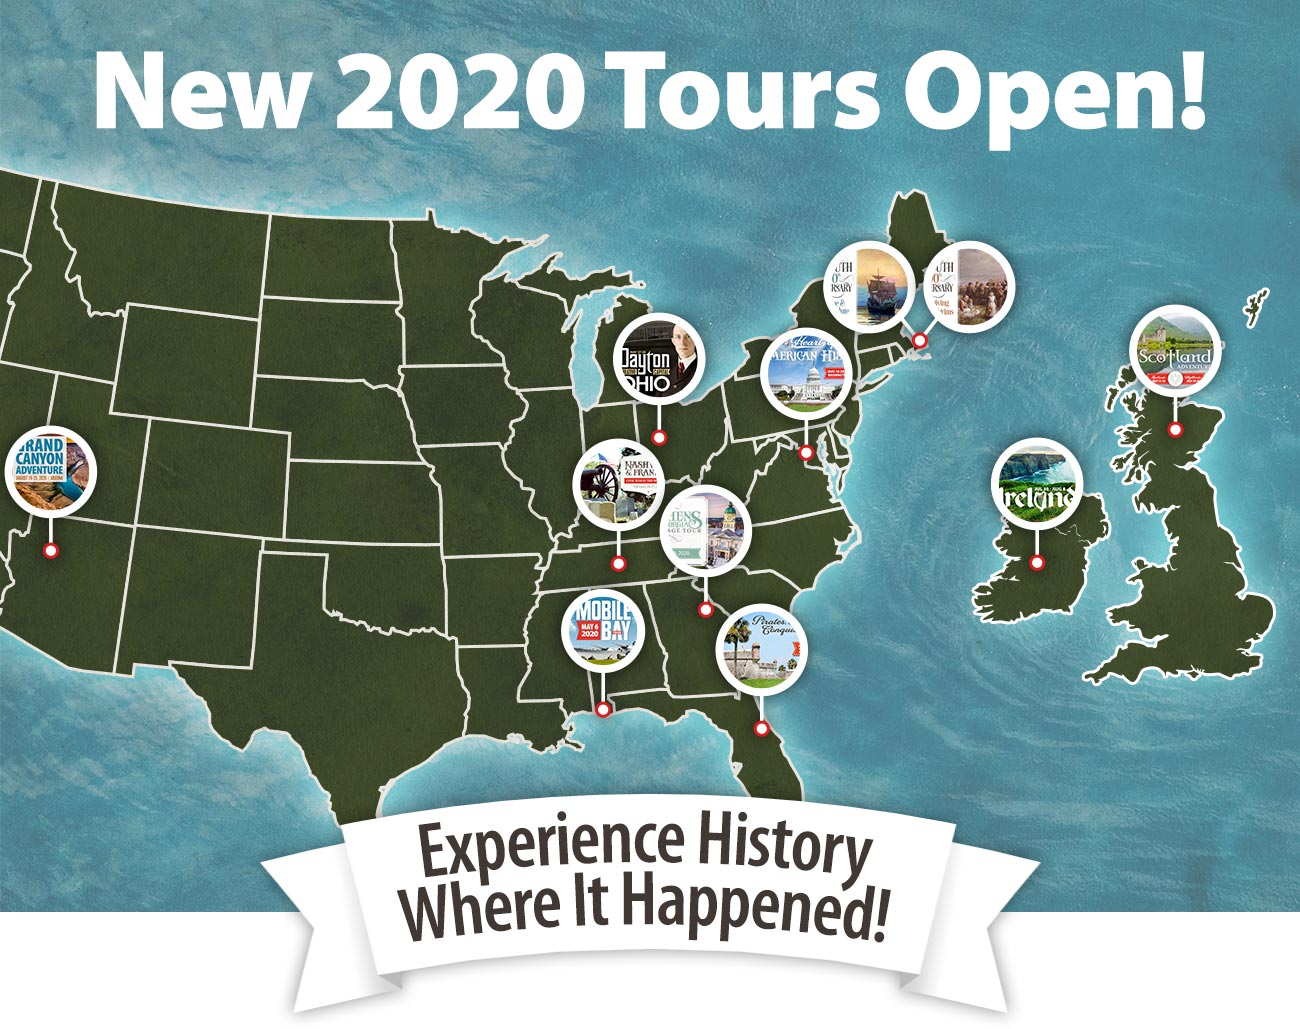 New 2020 Tours Open!